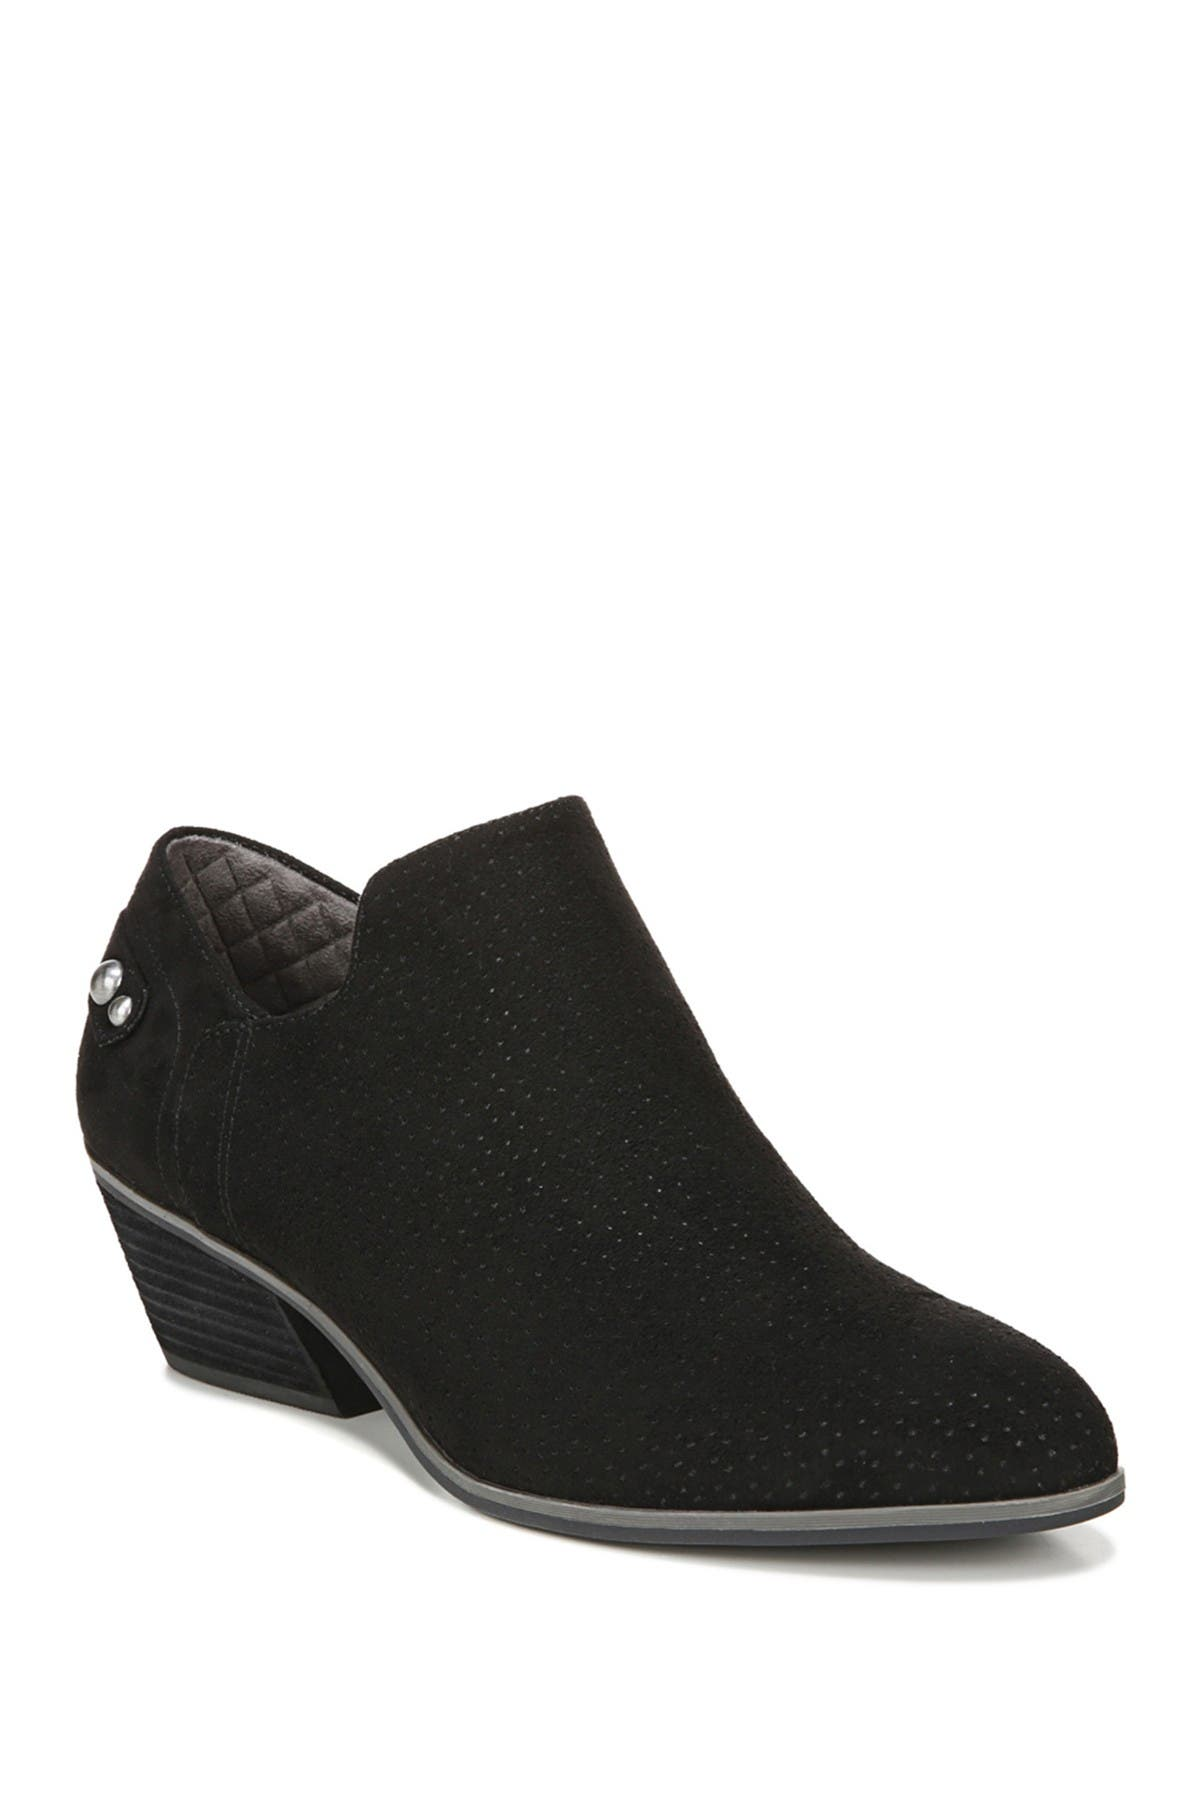 Image of Dr. Scholl's Never End Bootie